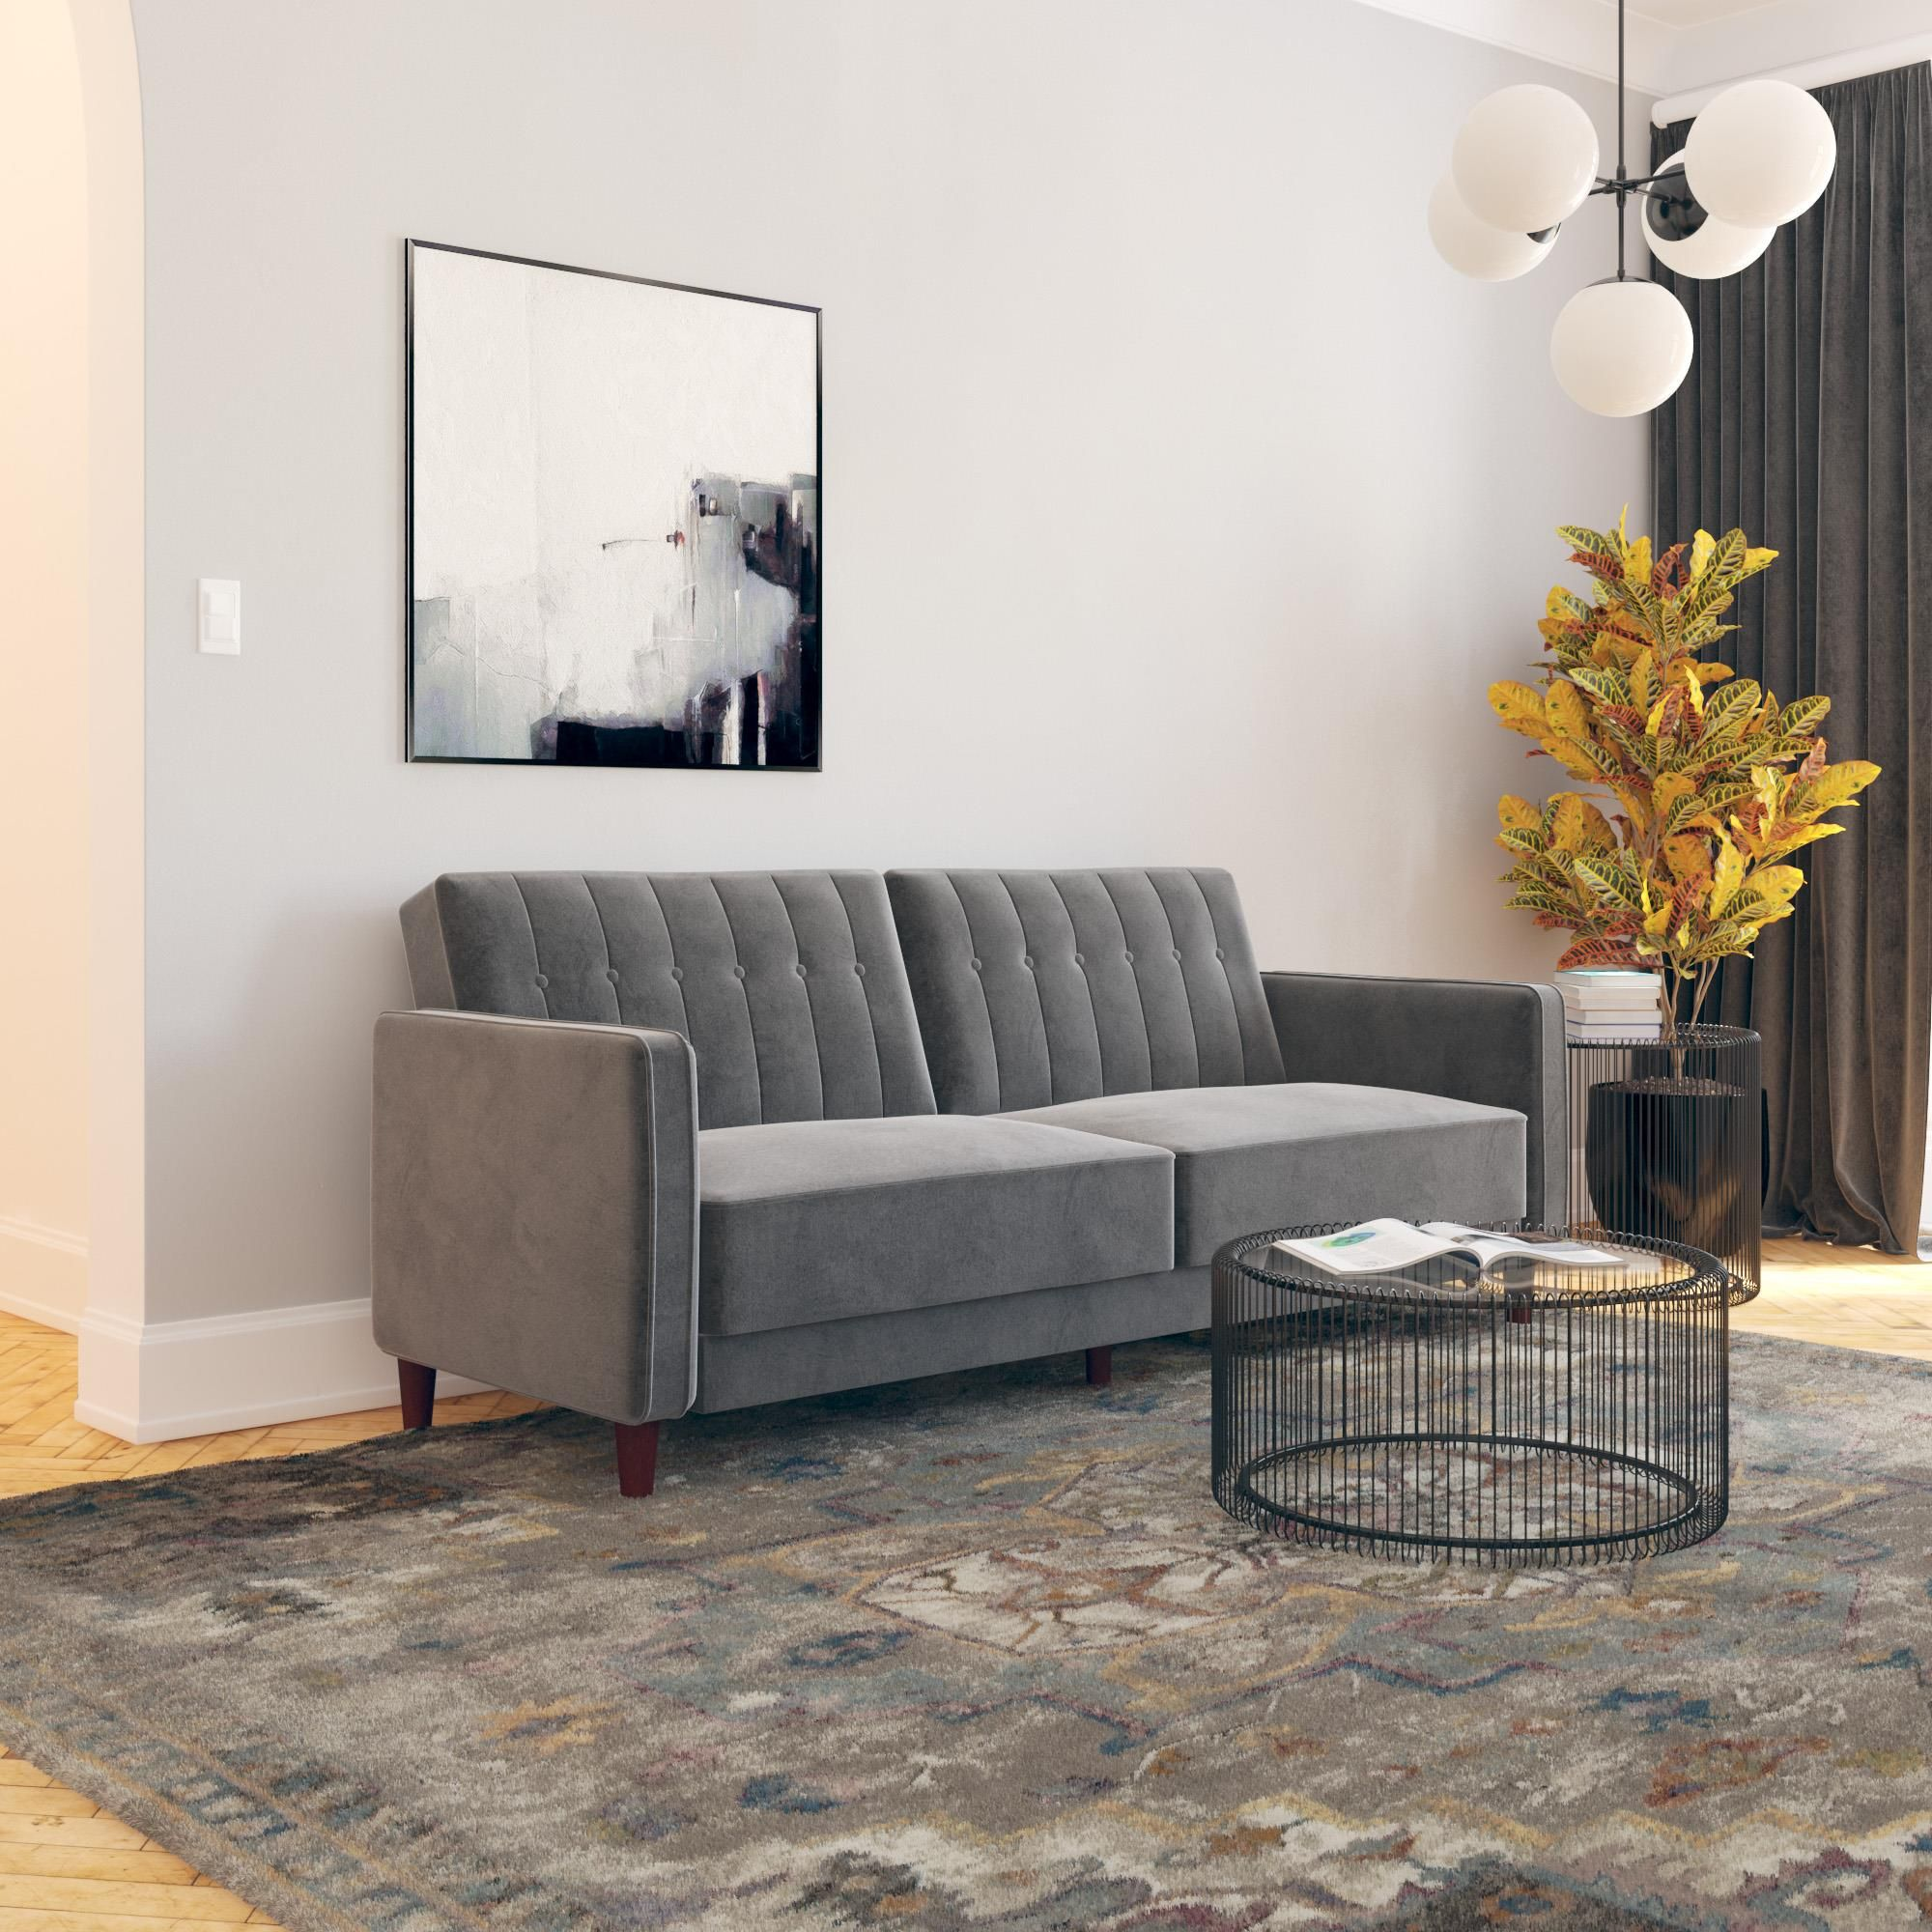 Home Tufted sofa, Sofa bed, Futon couch